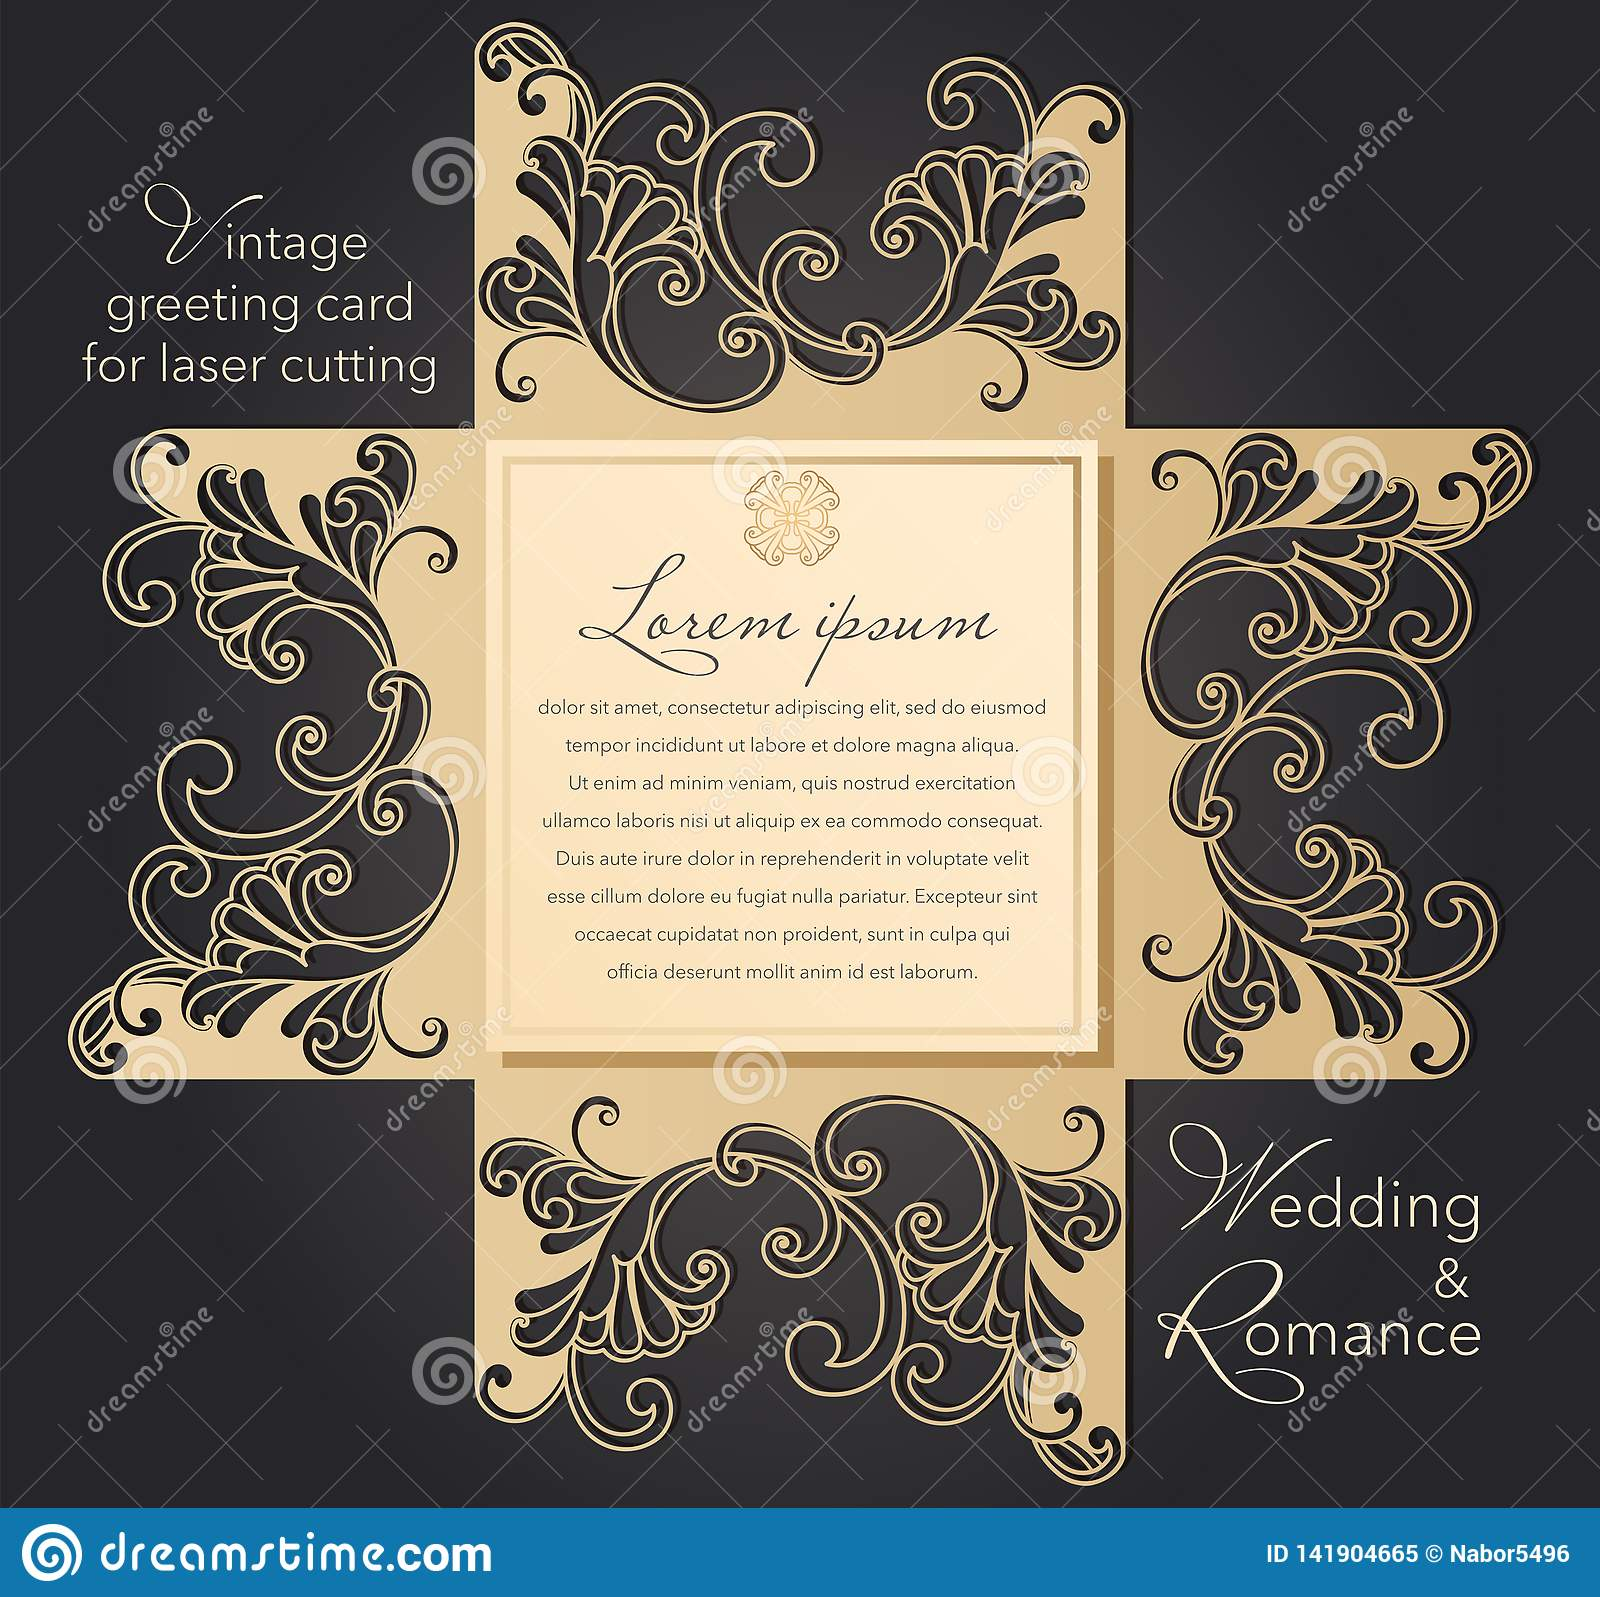 Laser Cut Wedding Invitation Template With Lace Pattern In Vintage